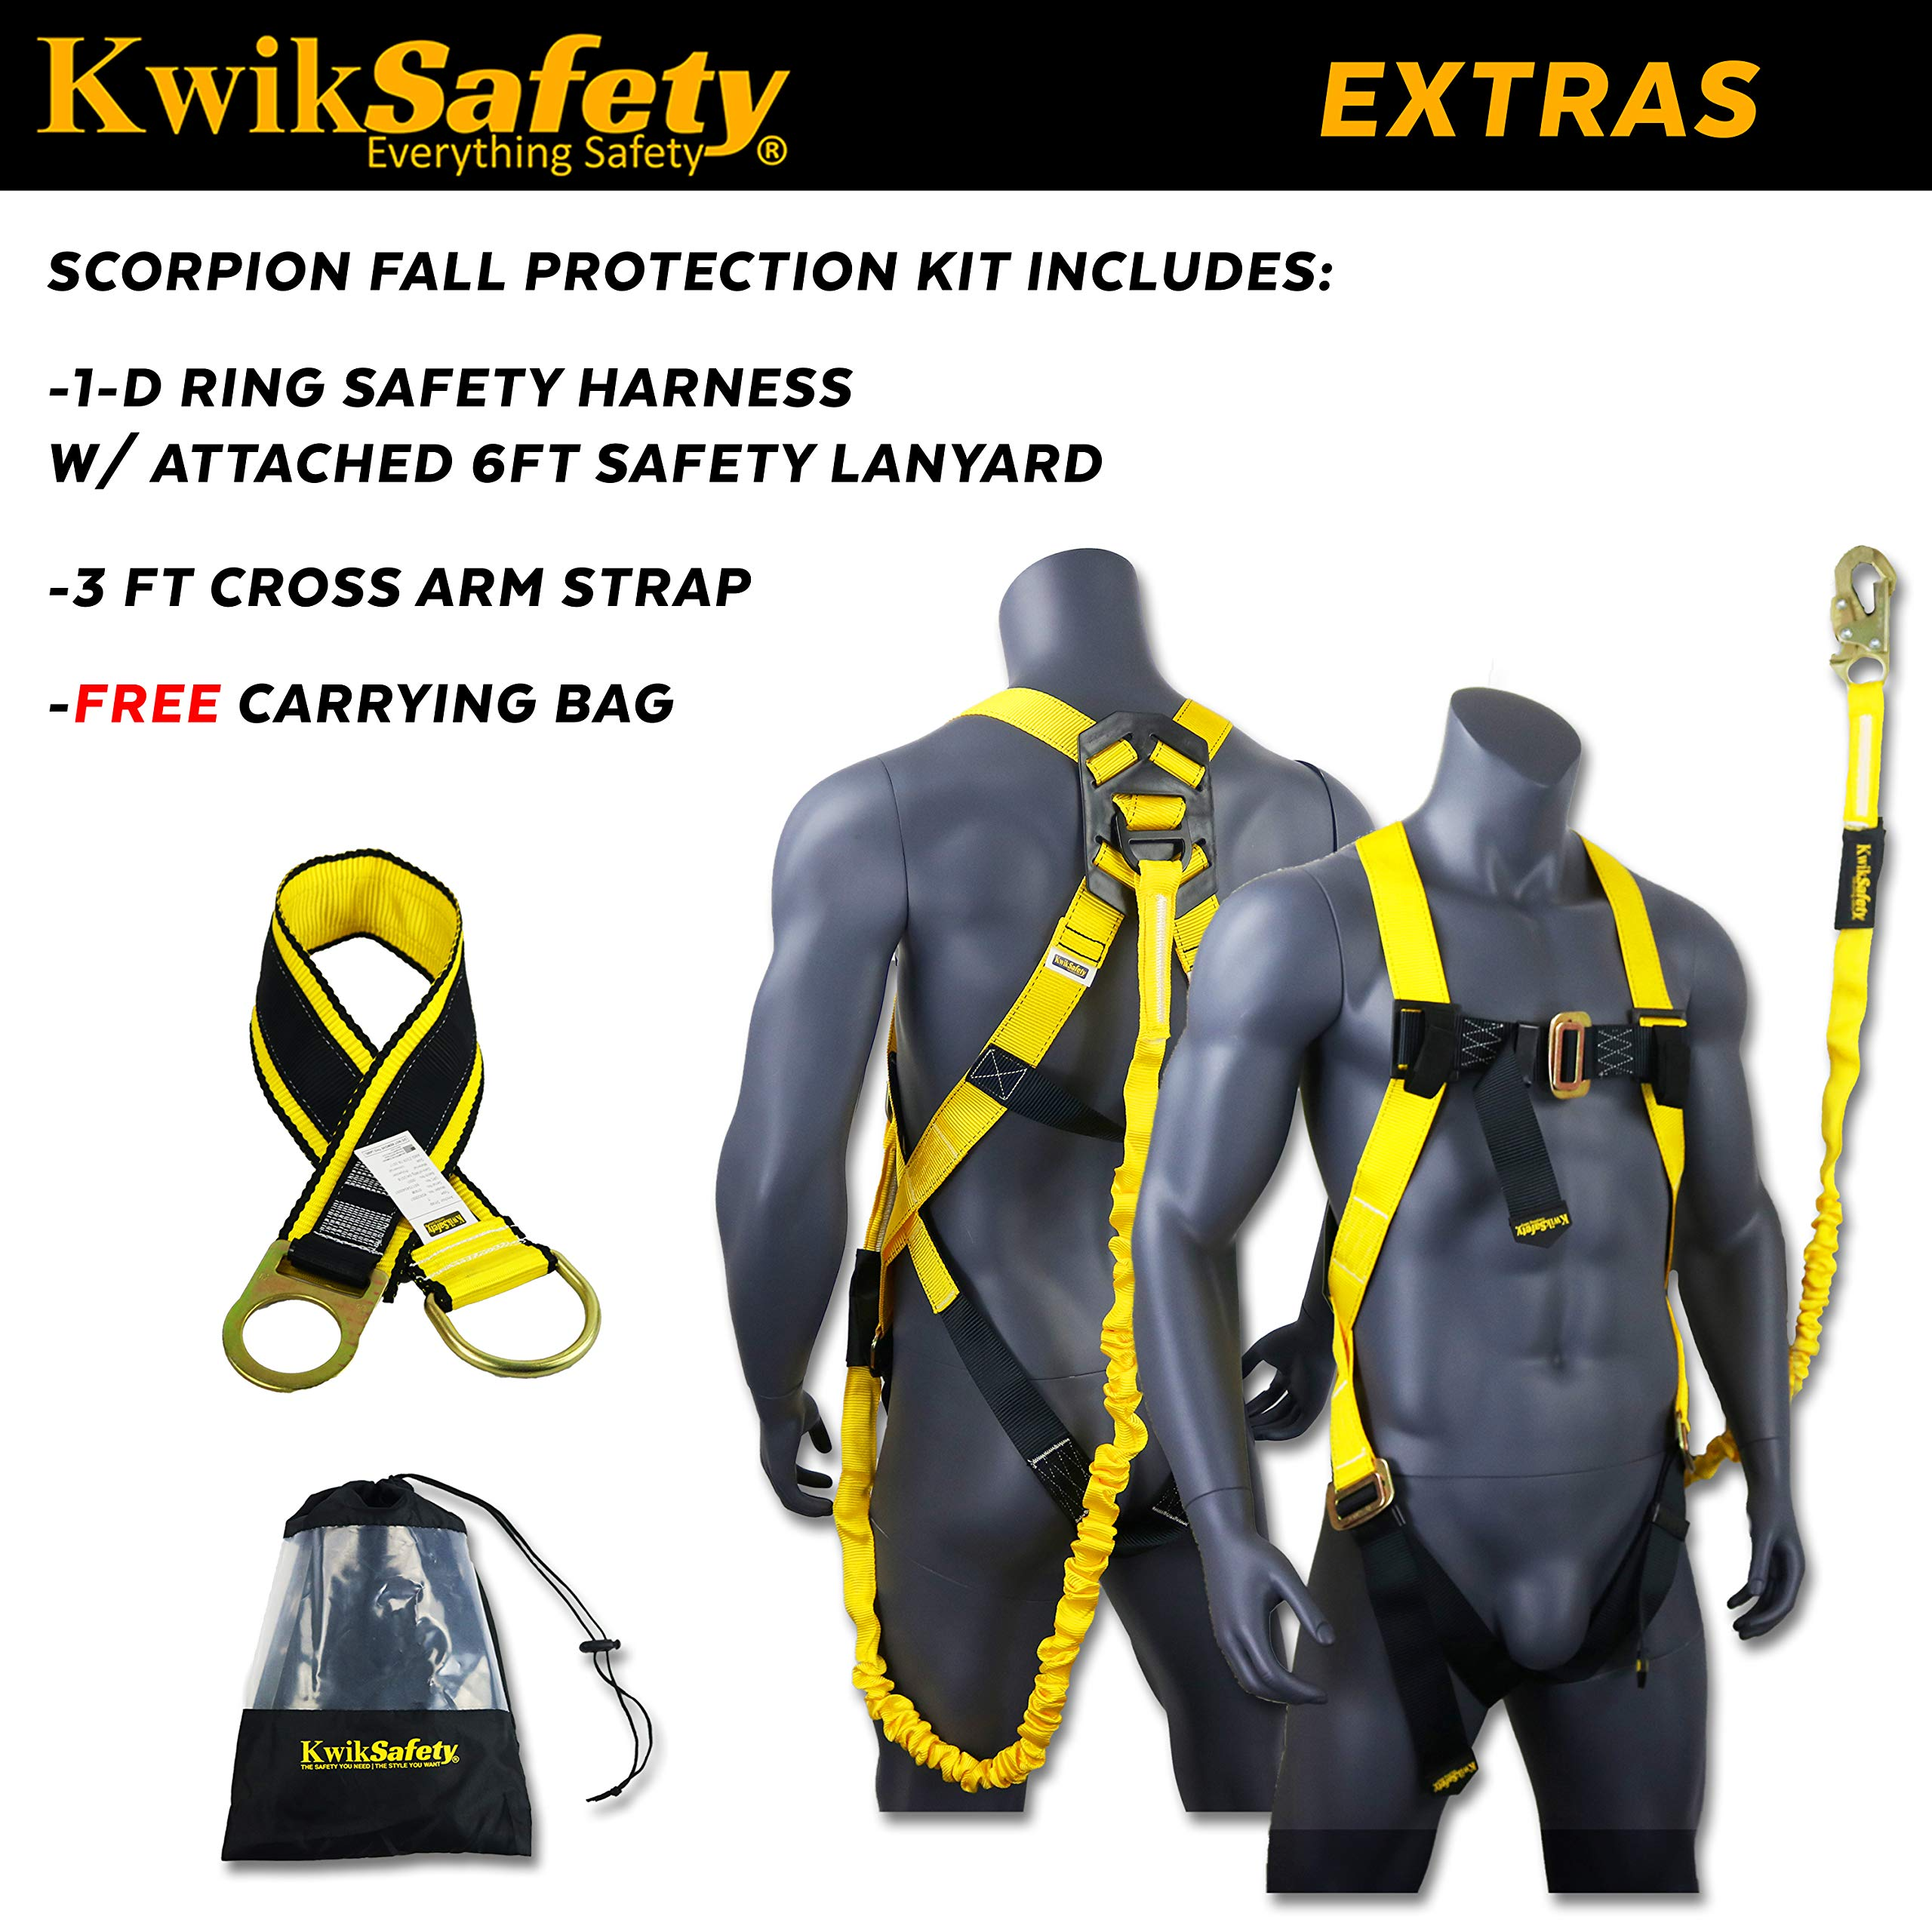 KwikSafety (Charlotte, NC) SCORPION KIT   1D Full Body Safety Harness, 6' Lanyard Attached, 3' Cross Arm Strap Anchor ANSI OSHA PPE Fall Protection Arrest Restraint Construction Roofer Bucket by KwikSafety (Image #3)